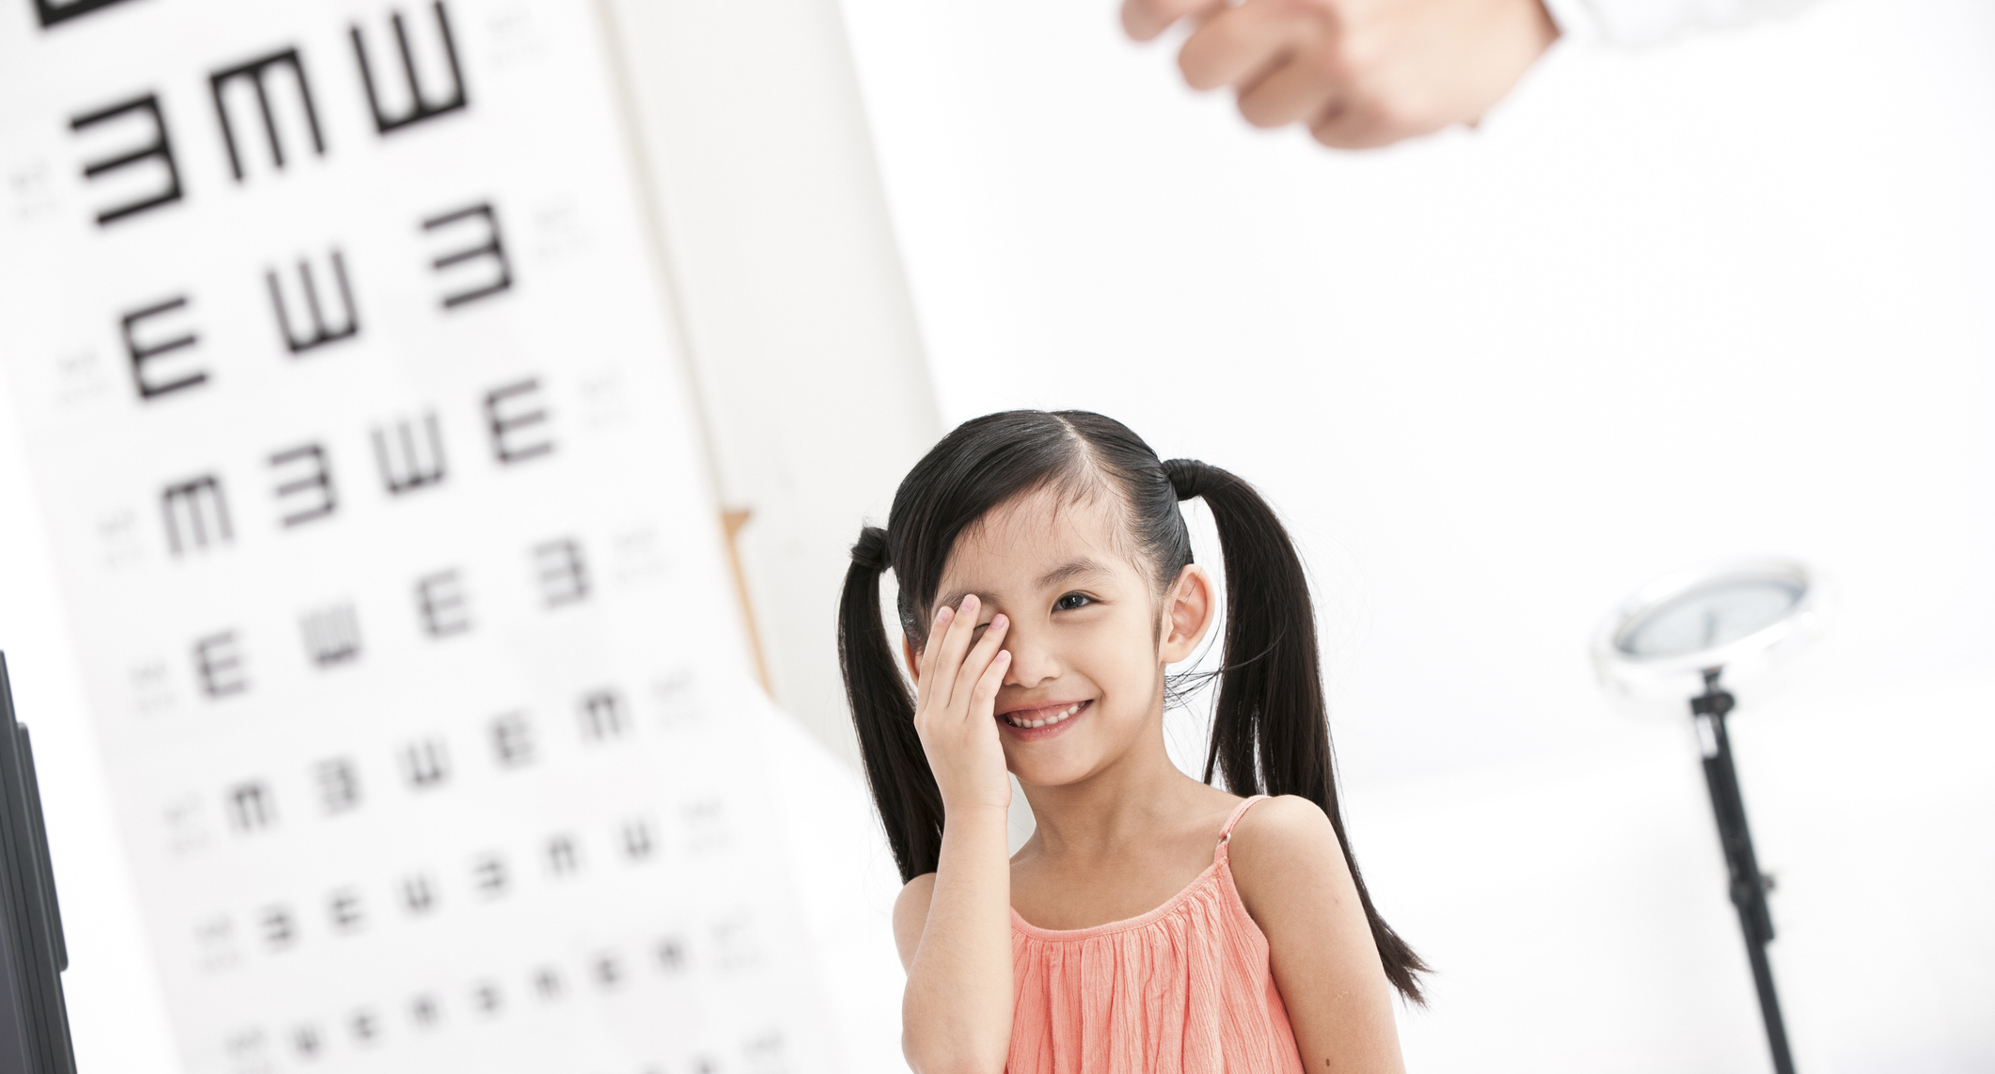 The Snellen eye chart is a staple of every eye exam.